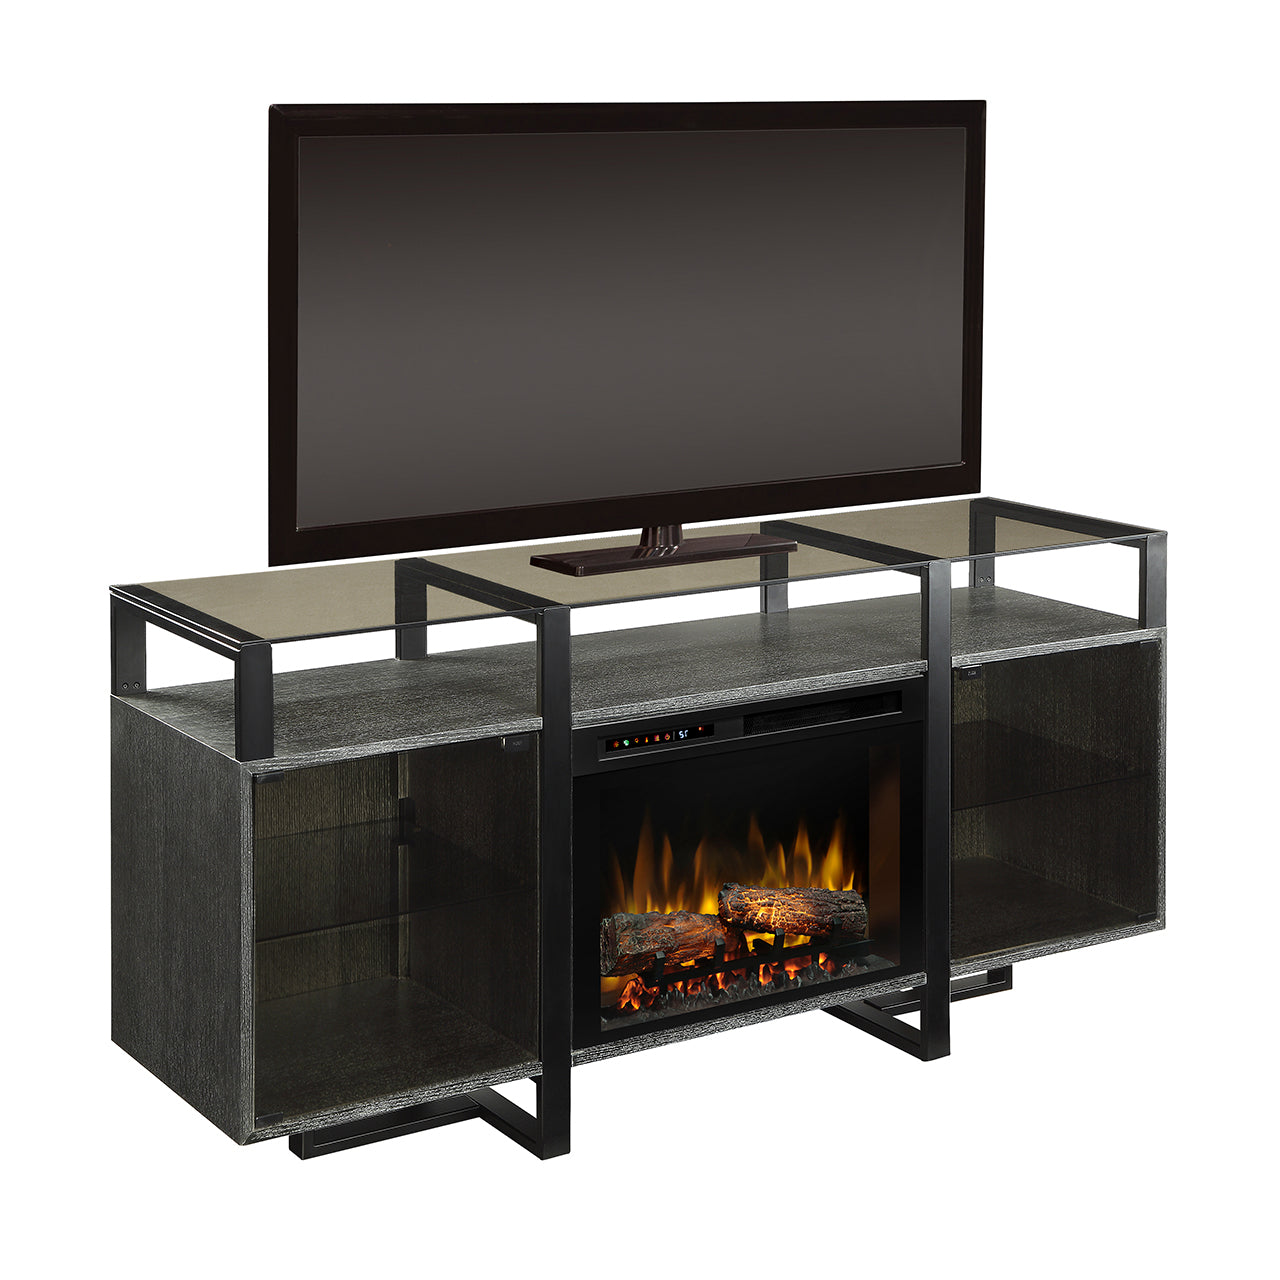 Picture of Milo Media Console Fireplace